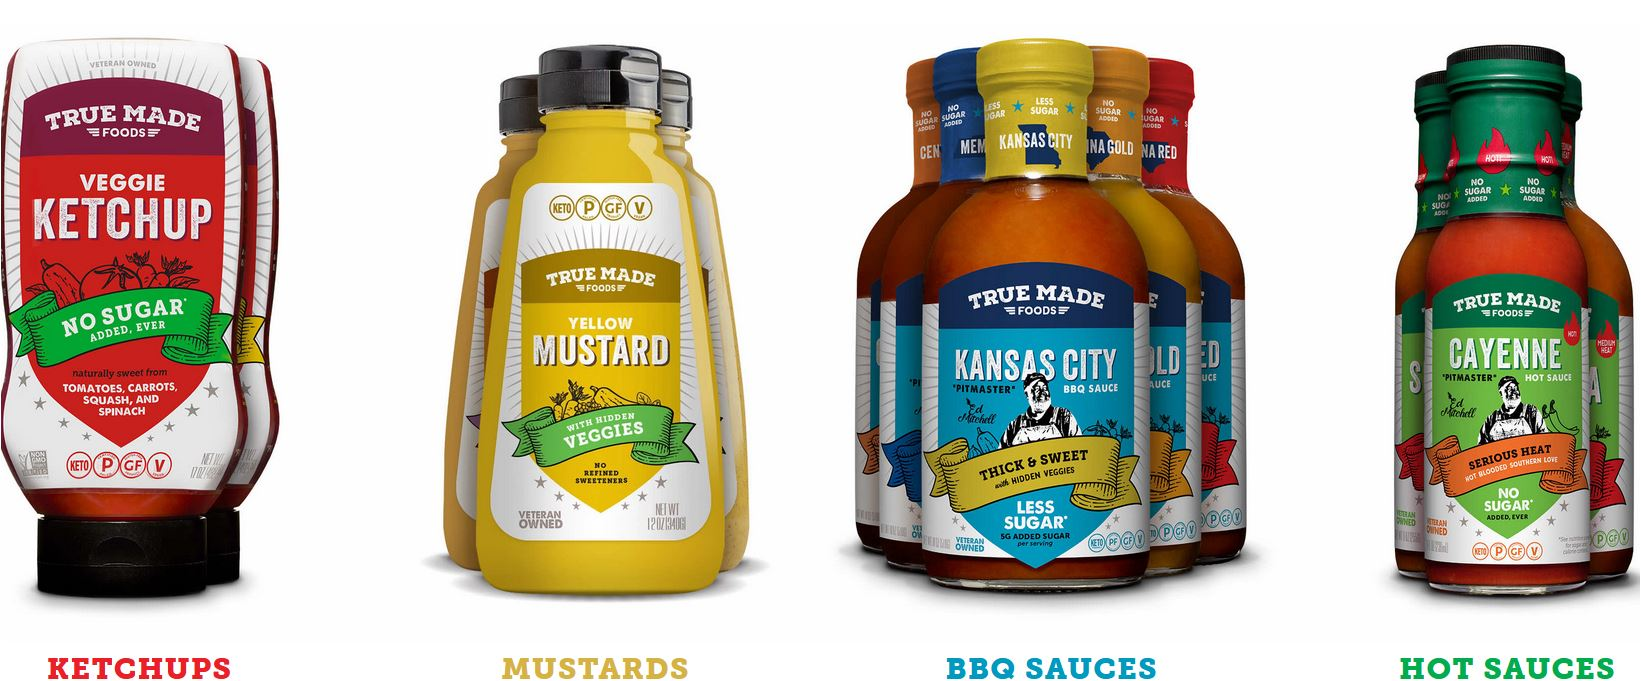 True Made sauces and condiments made with no or less sugar